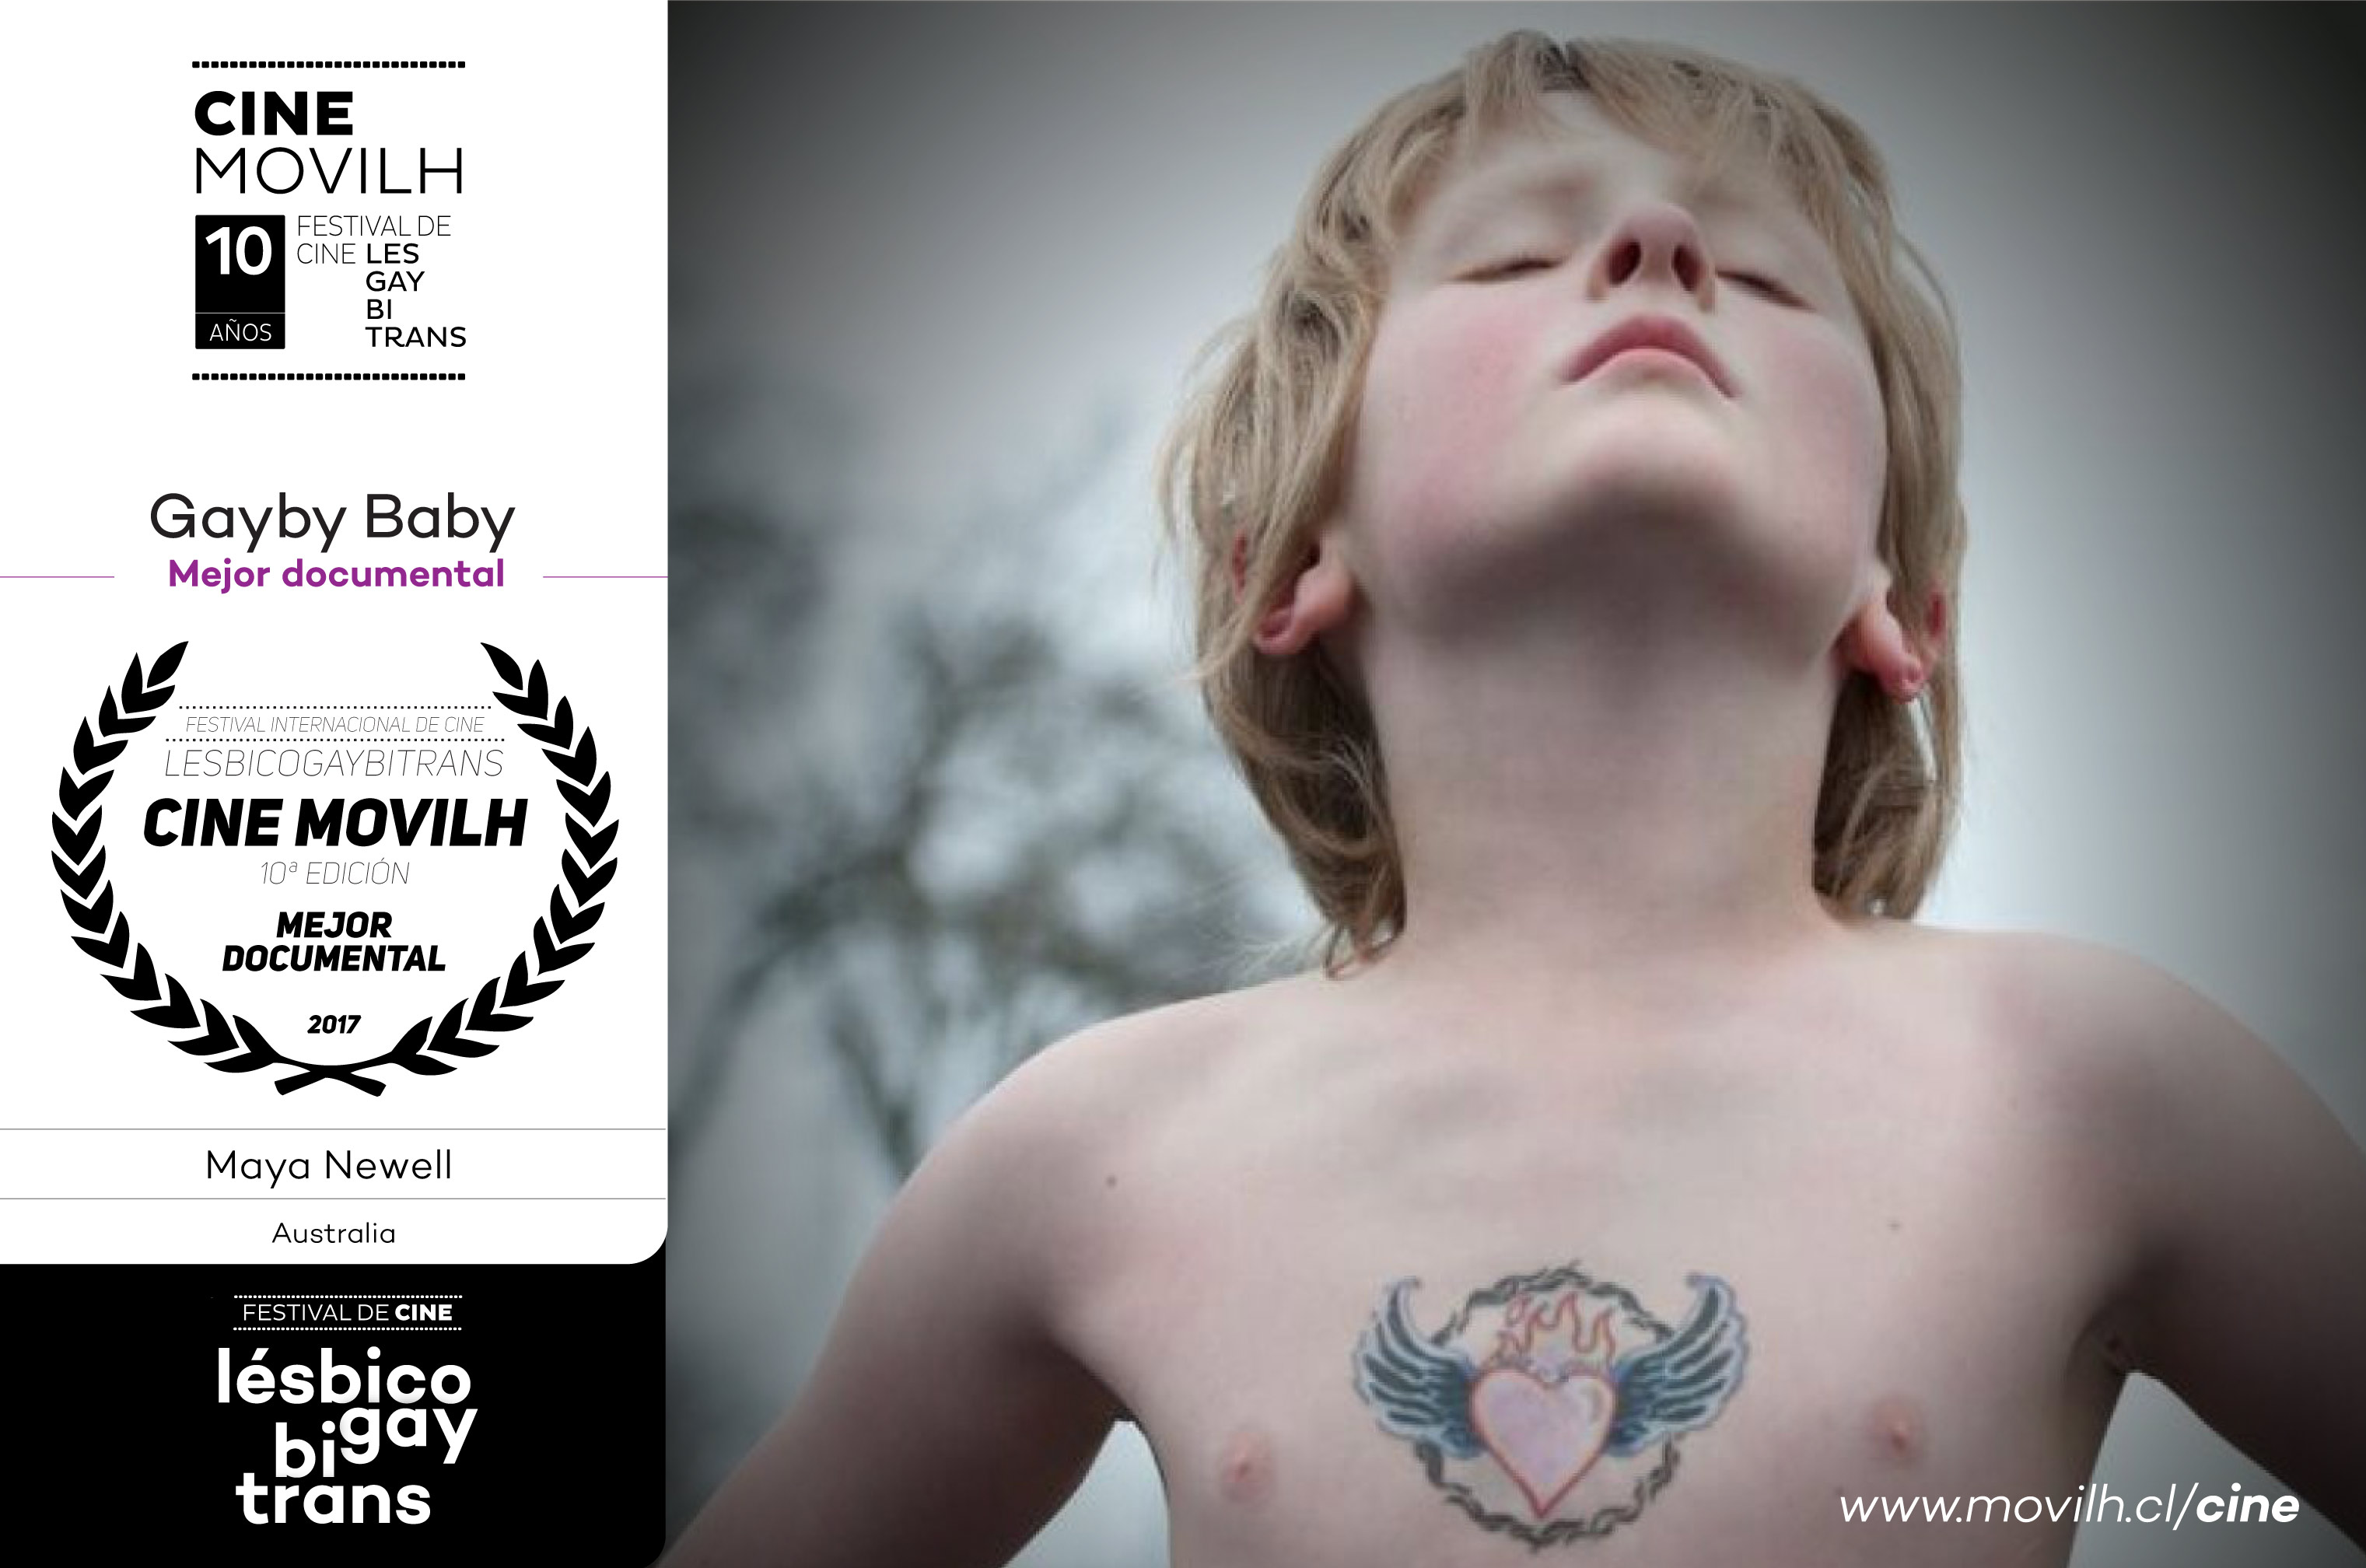 mejor-documental-cine-movilh-2017